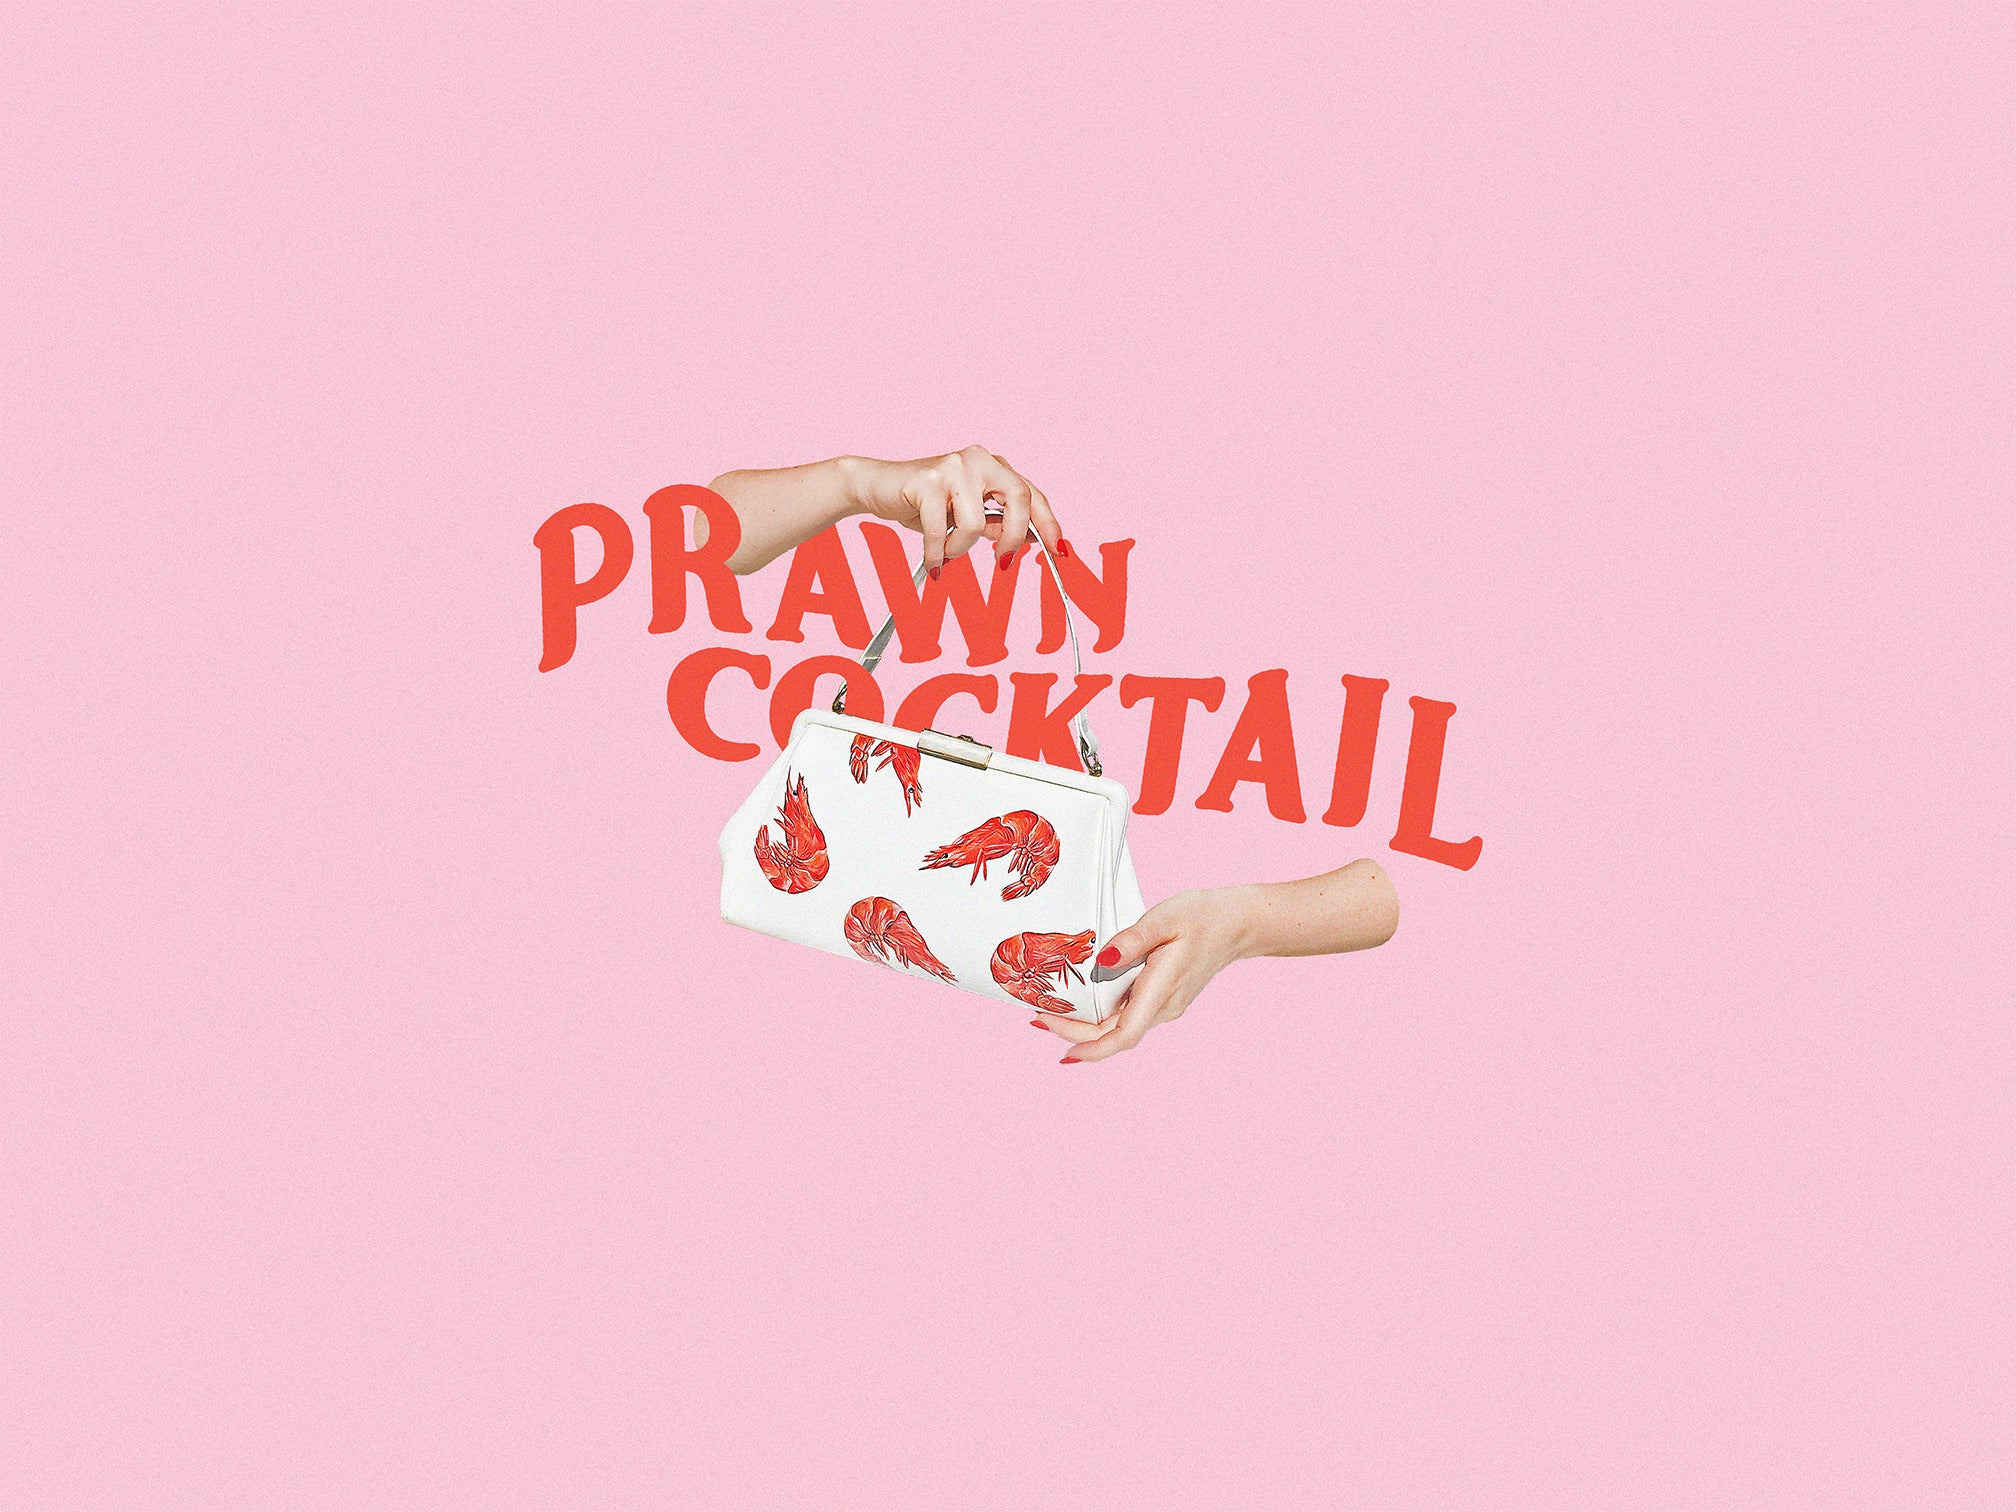 PRAWN COCKTAIL GIFTCARD